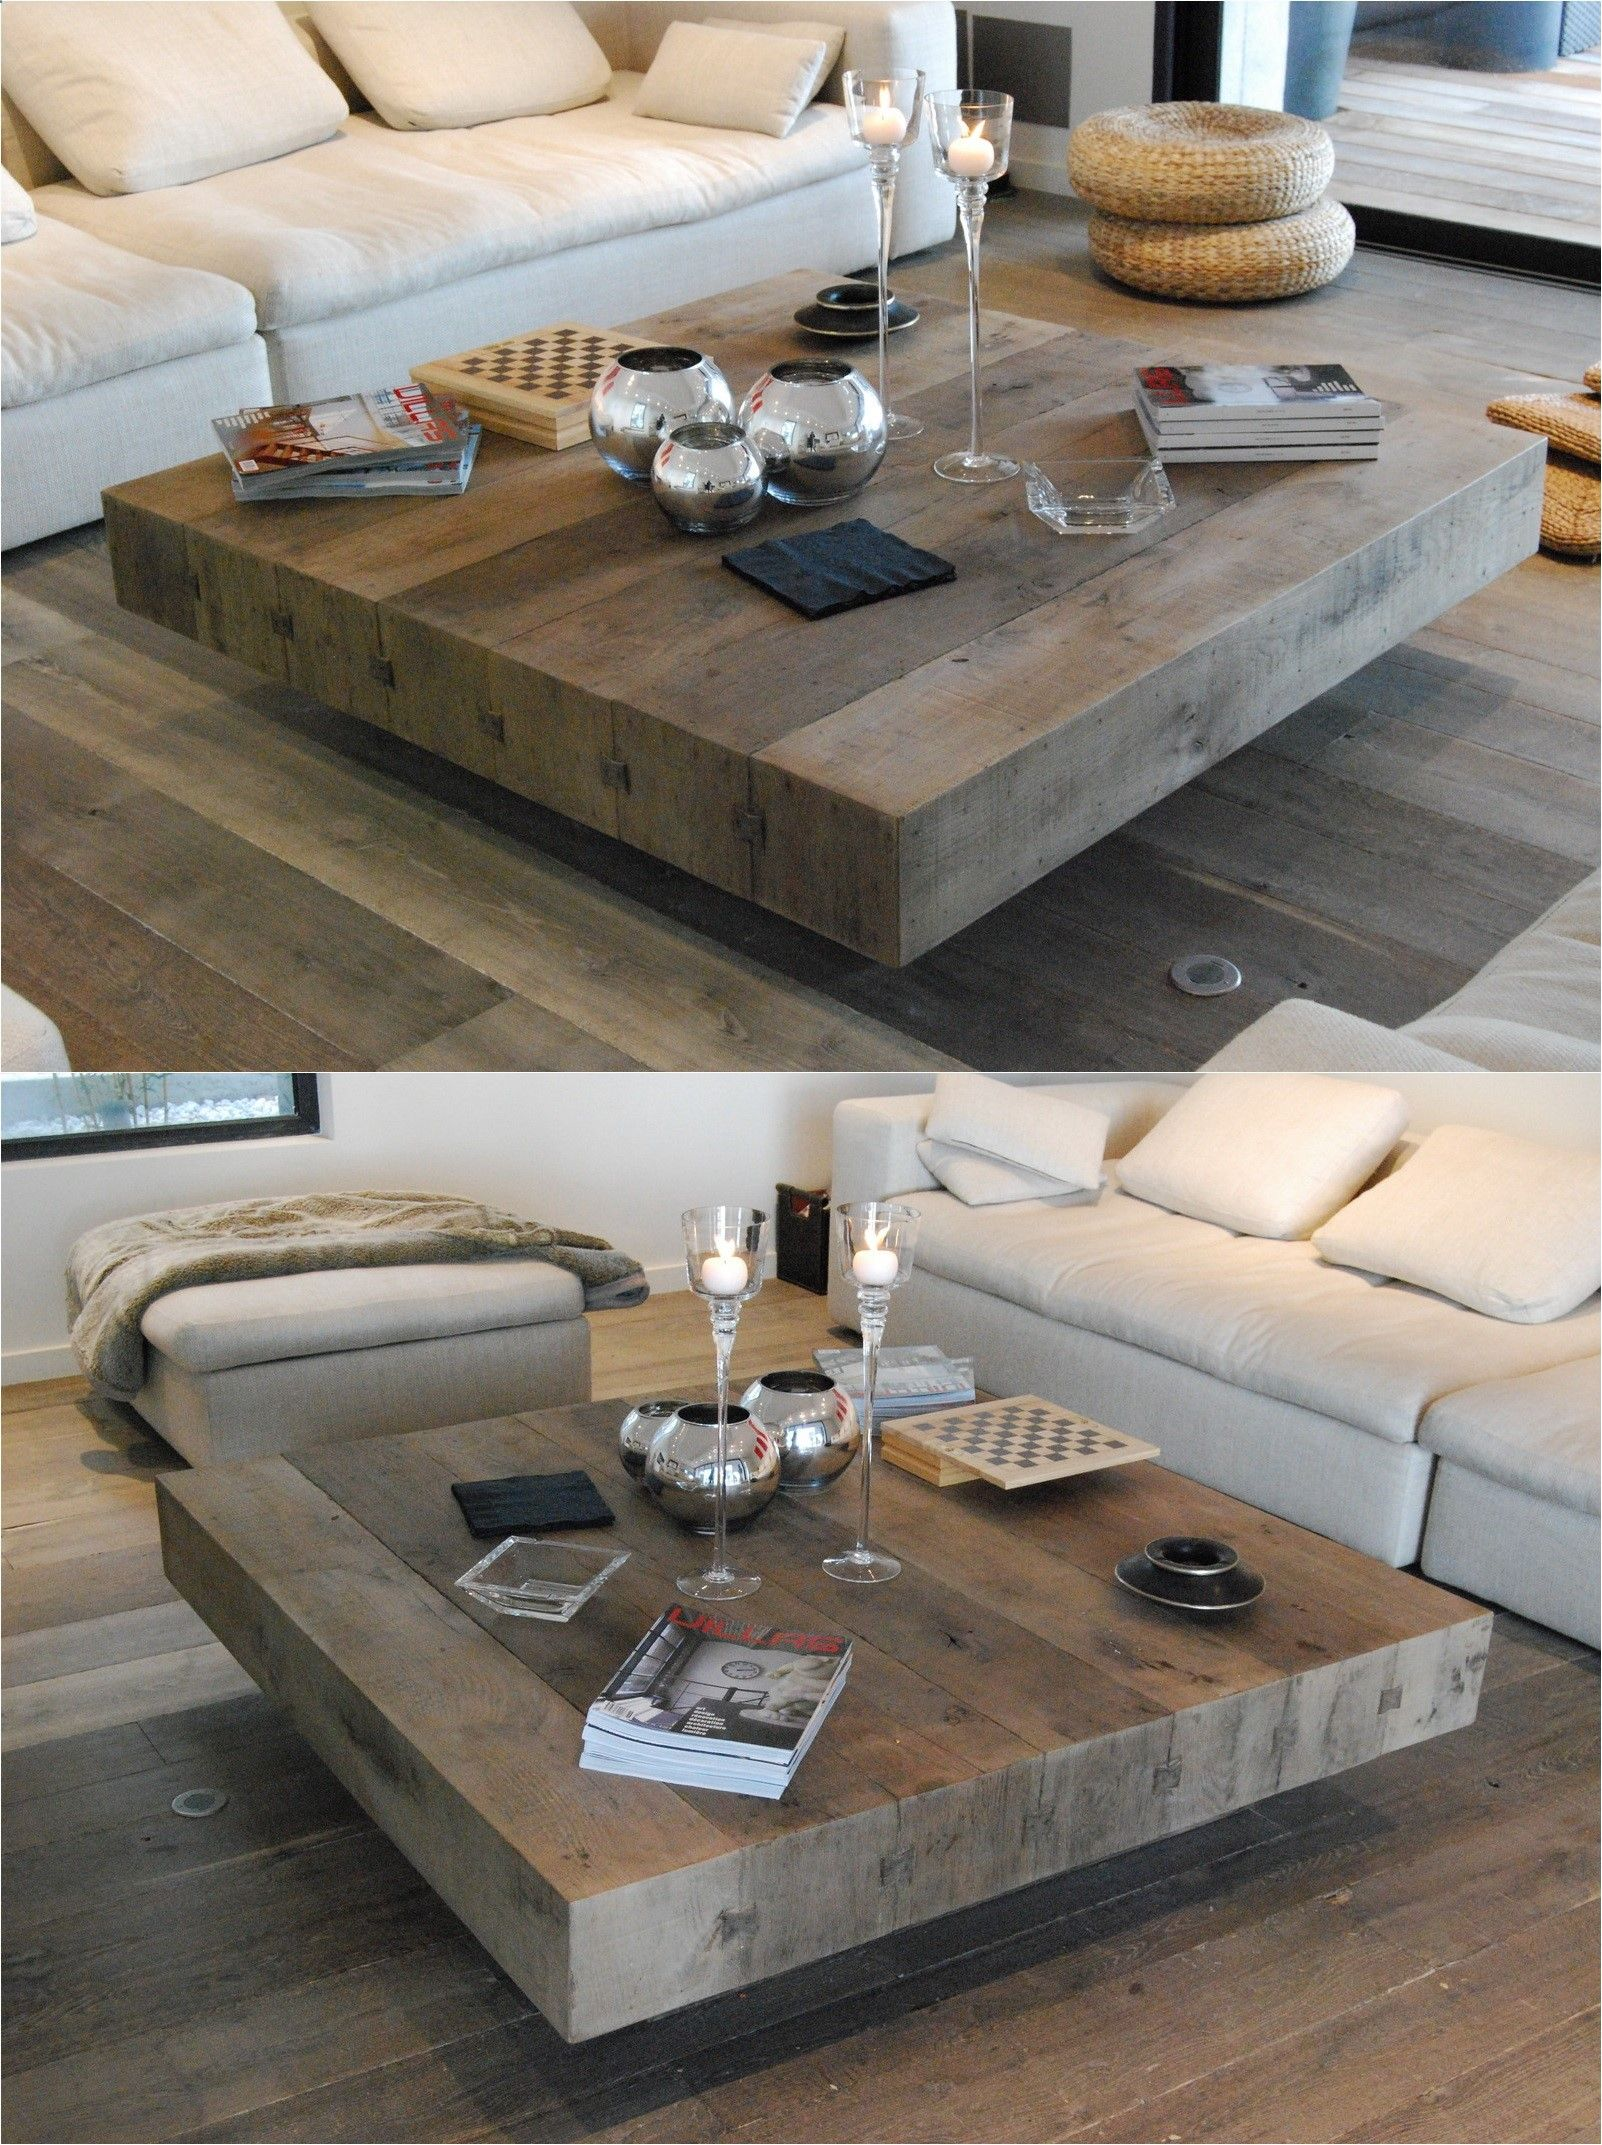 - BONHEUR Wooden Handmade Square Coffee Table By Didier Cabuy Square Wooden  Coffee Table